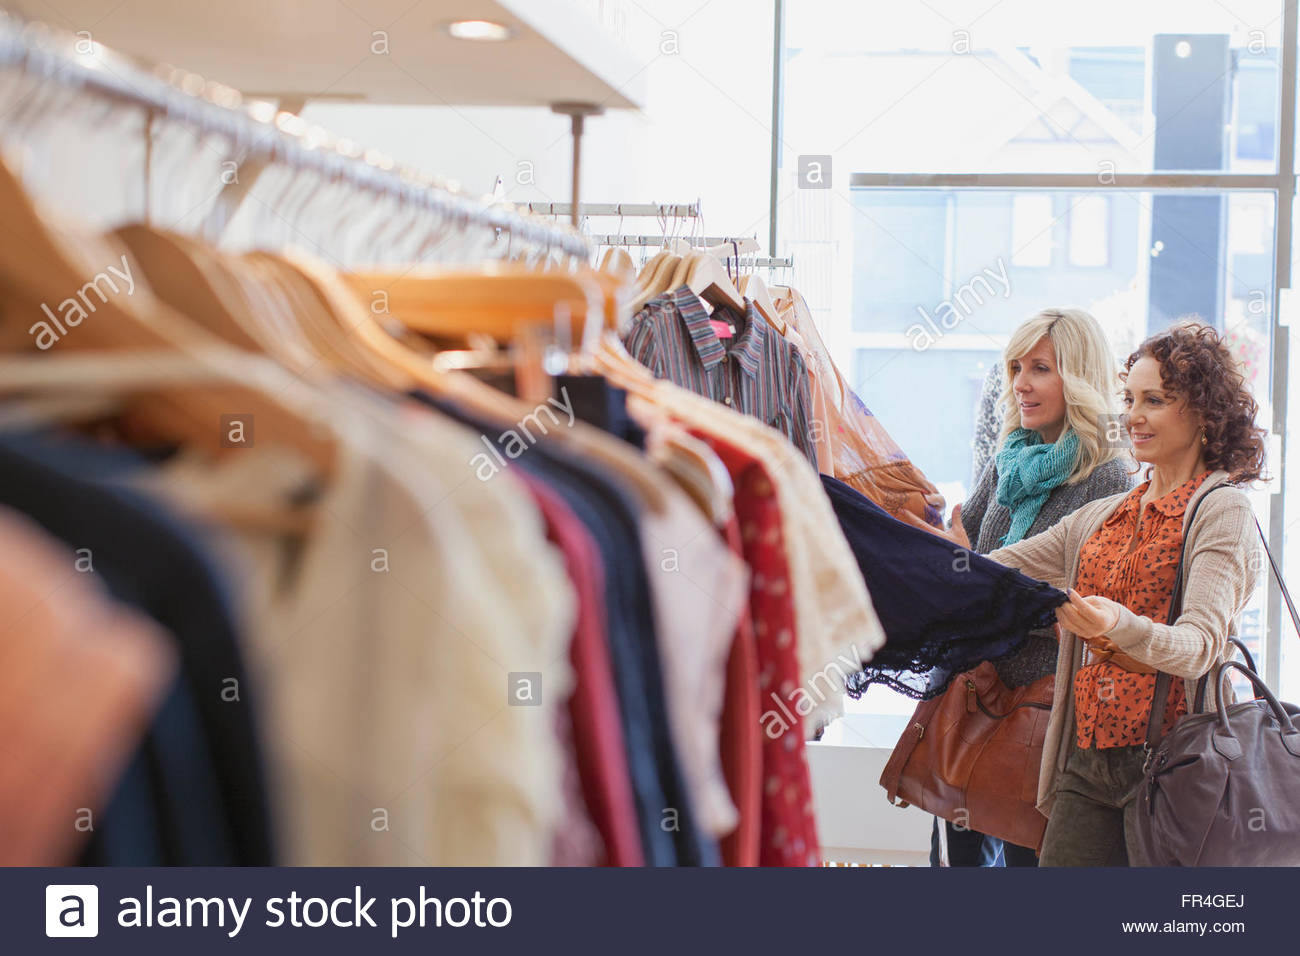 Friends looking at outfit in womens clothing store. - Stock Image